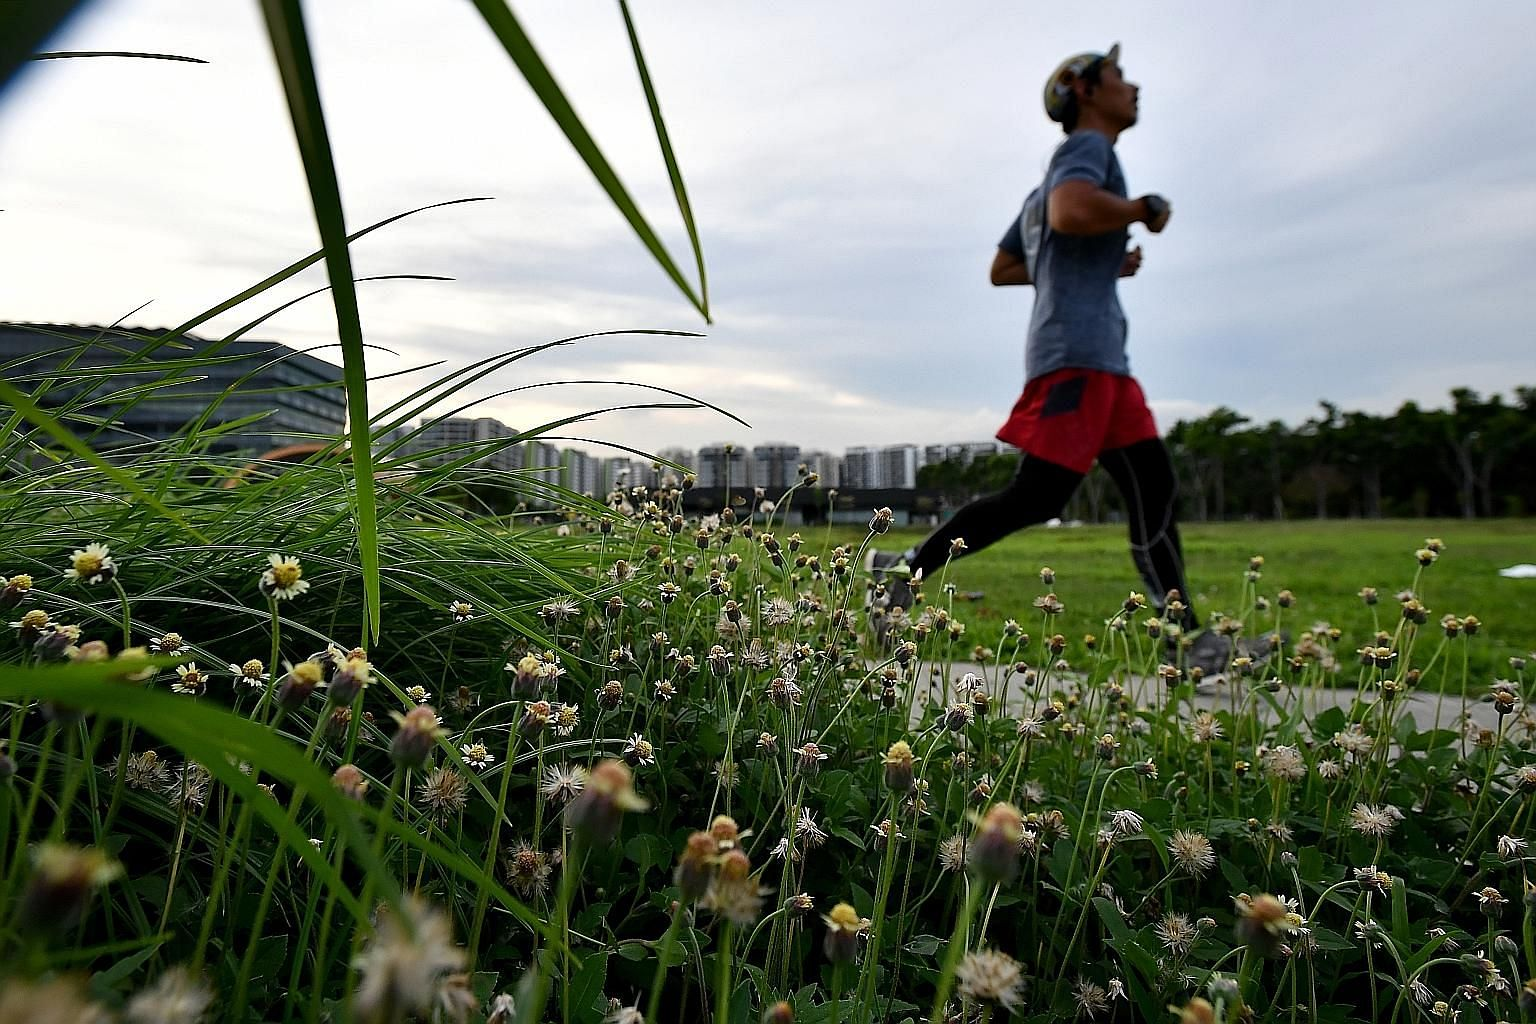 Weeds and wildflowers are growing across the island after the cutting of grass was scaled back during the circuit breaker period. But while some people welcome the proliferation of weeds, saying it could also lead to more wild bees and butterflies, o